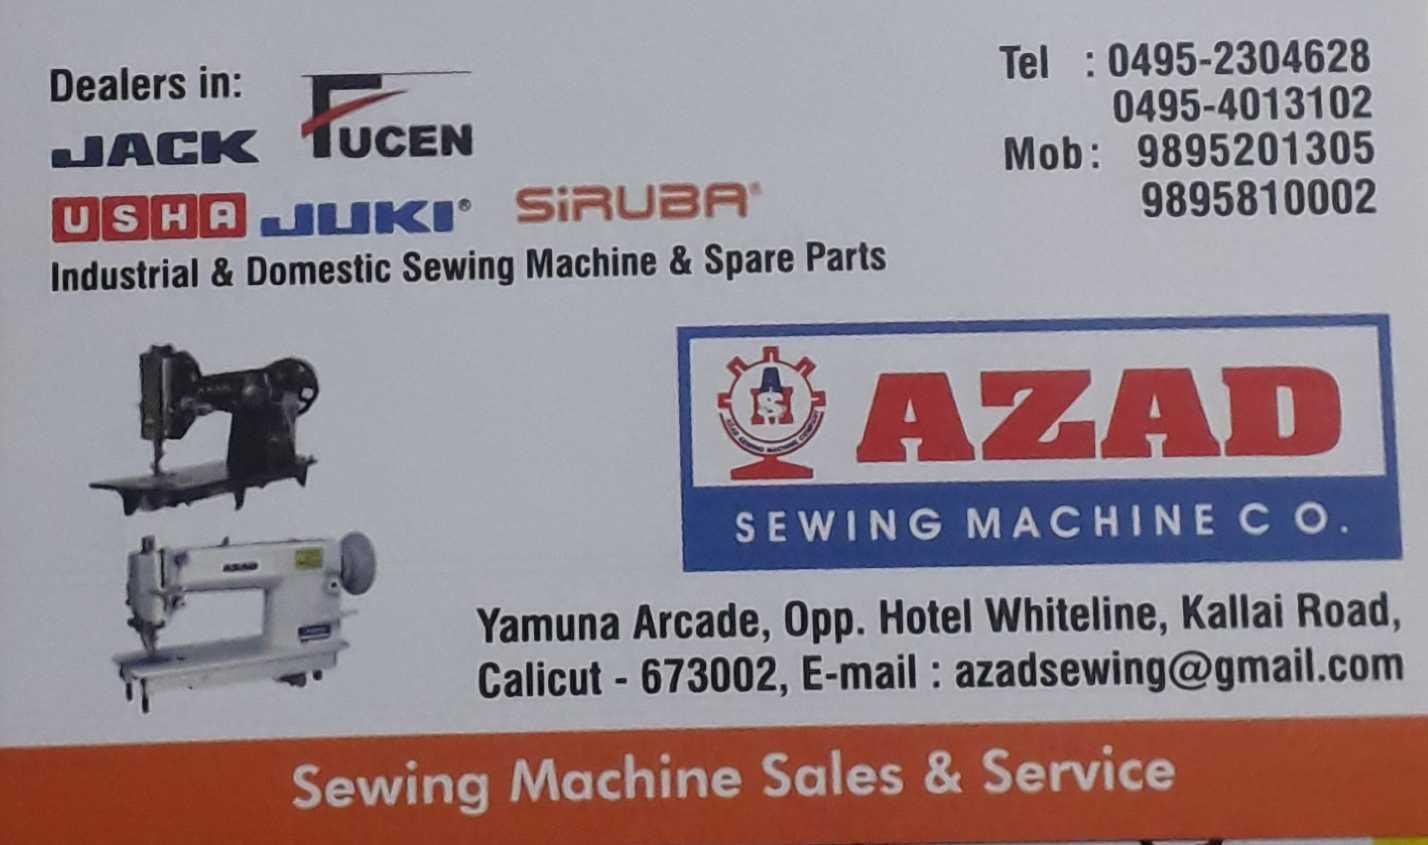 AZAD SEWING MACHINE CO., SEWING MACHINE & TAILORING MATERIALS,  service in Bank Road, Kozhikode